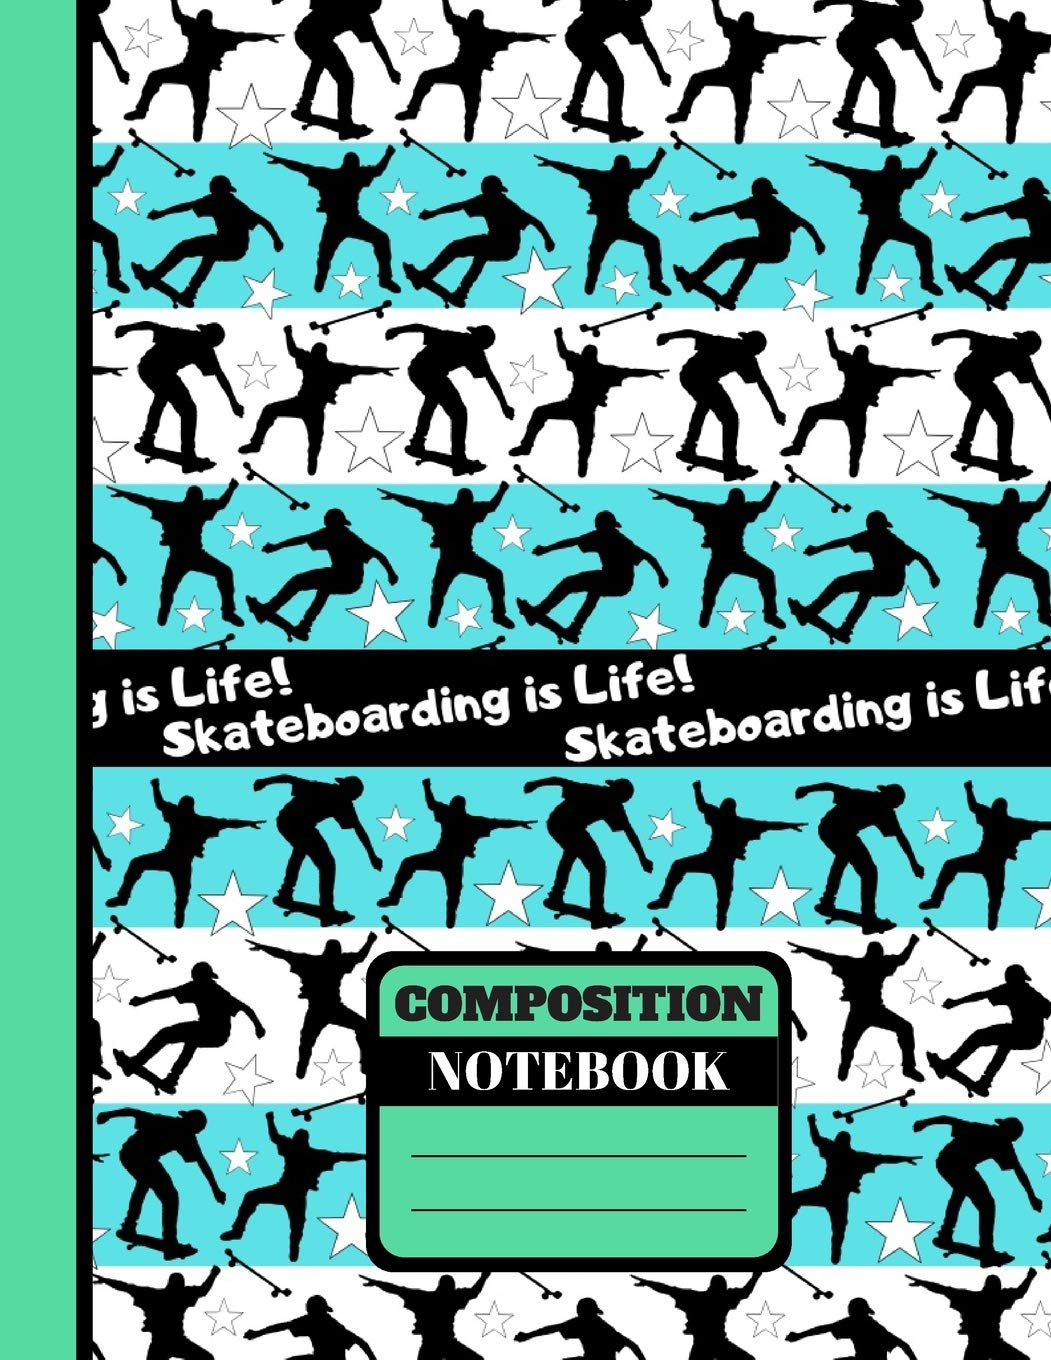 Skateboarding Is Life! (COMPOSITION NOTEBOOK): Skateboarding Quote Pattern Print Novelty Gift - College Ruled Skateboardin...